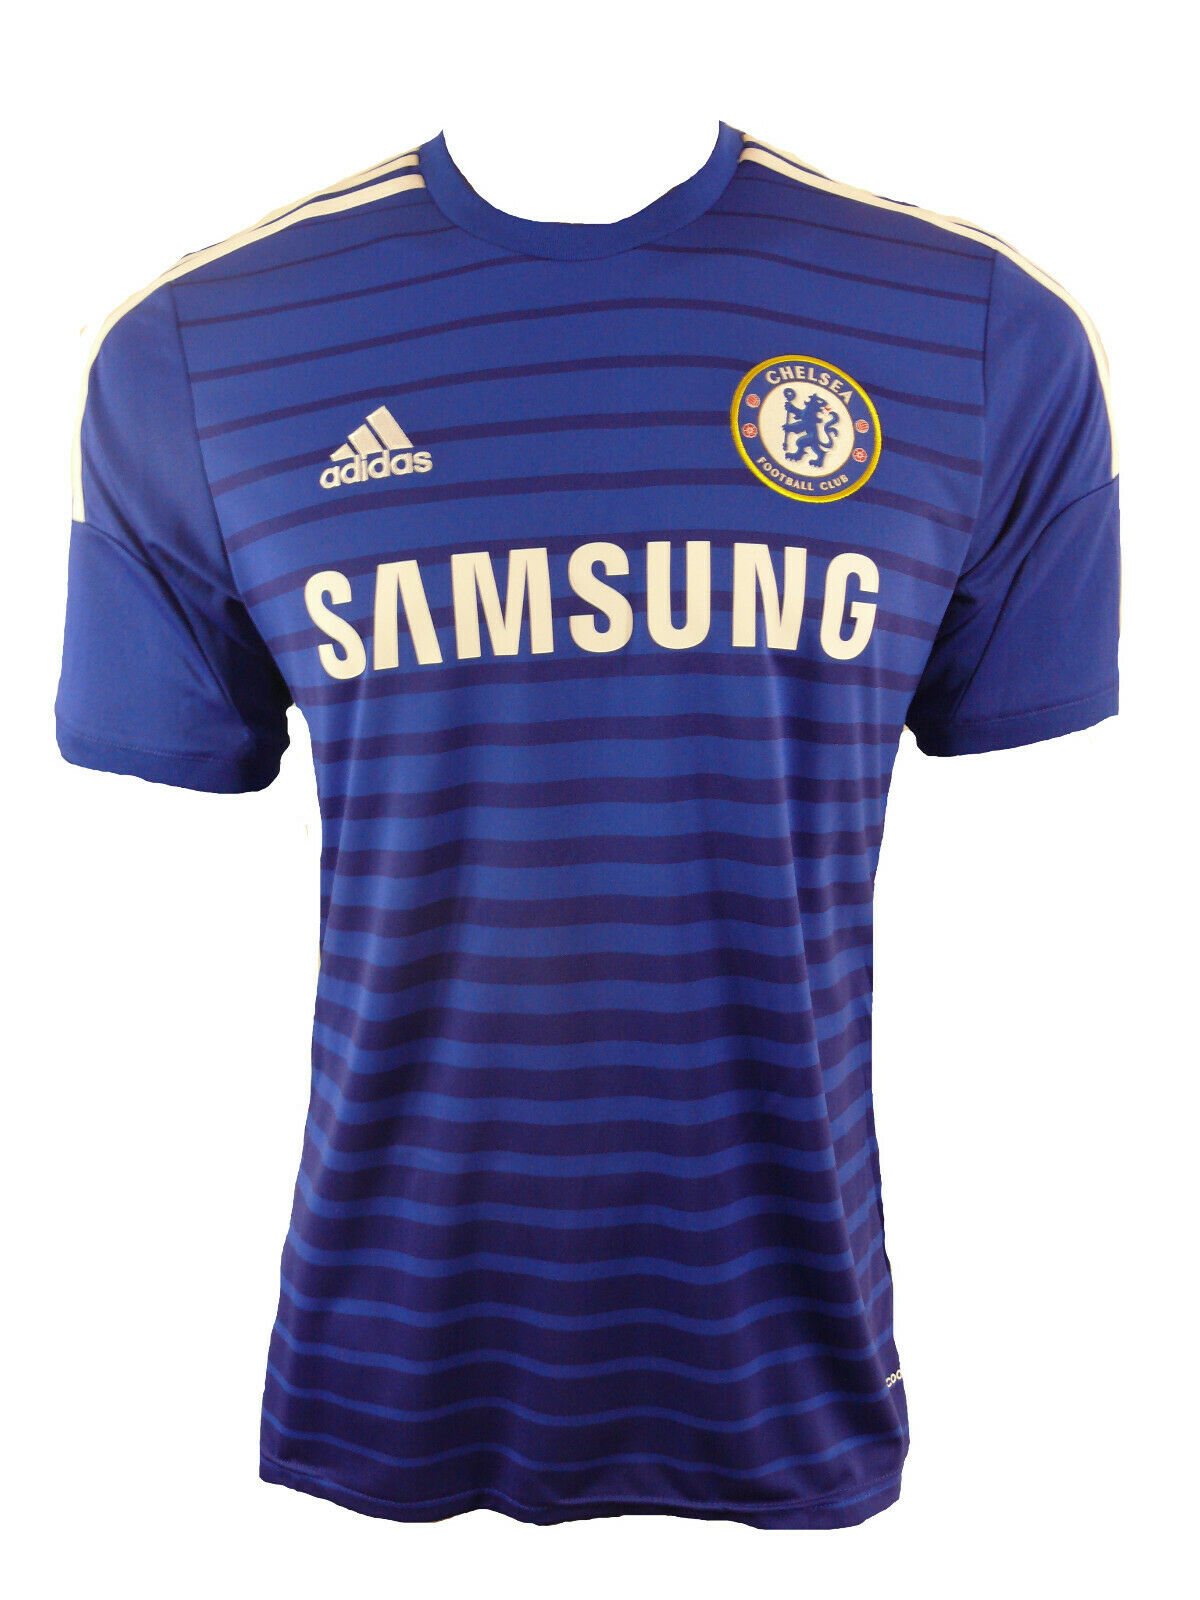 Adidas FC Chelsea London Maillot size XL